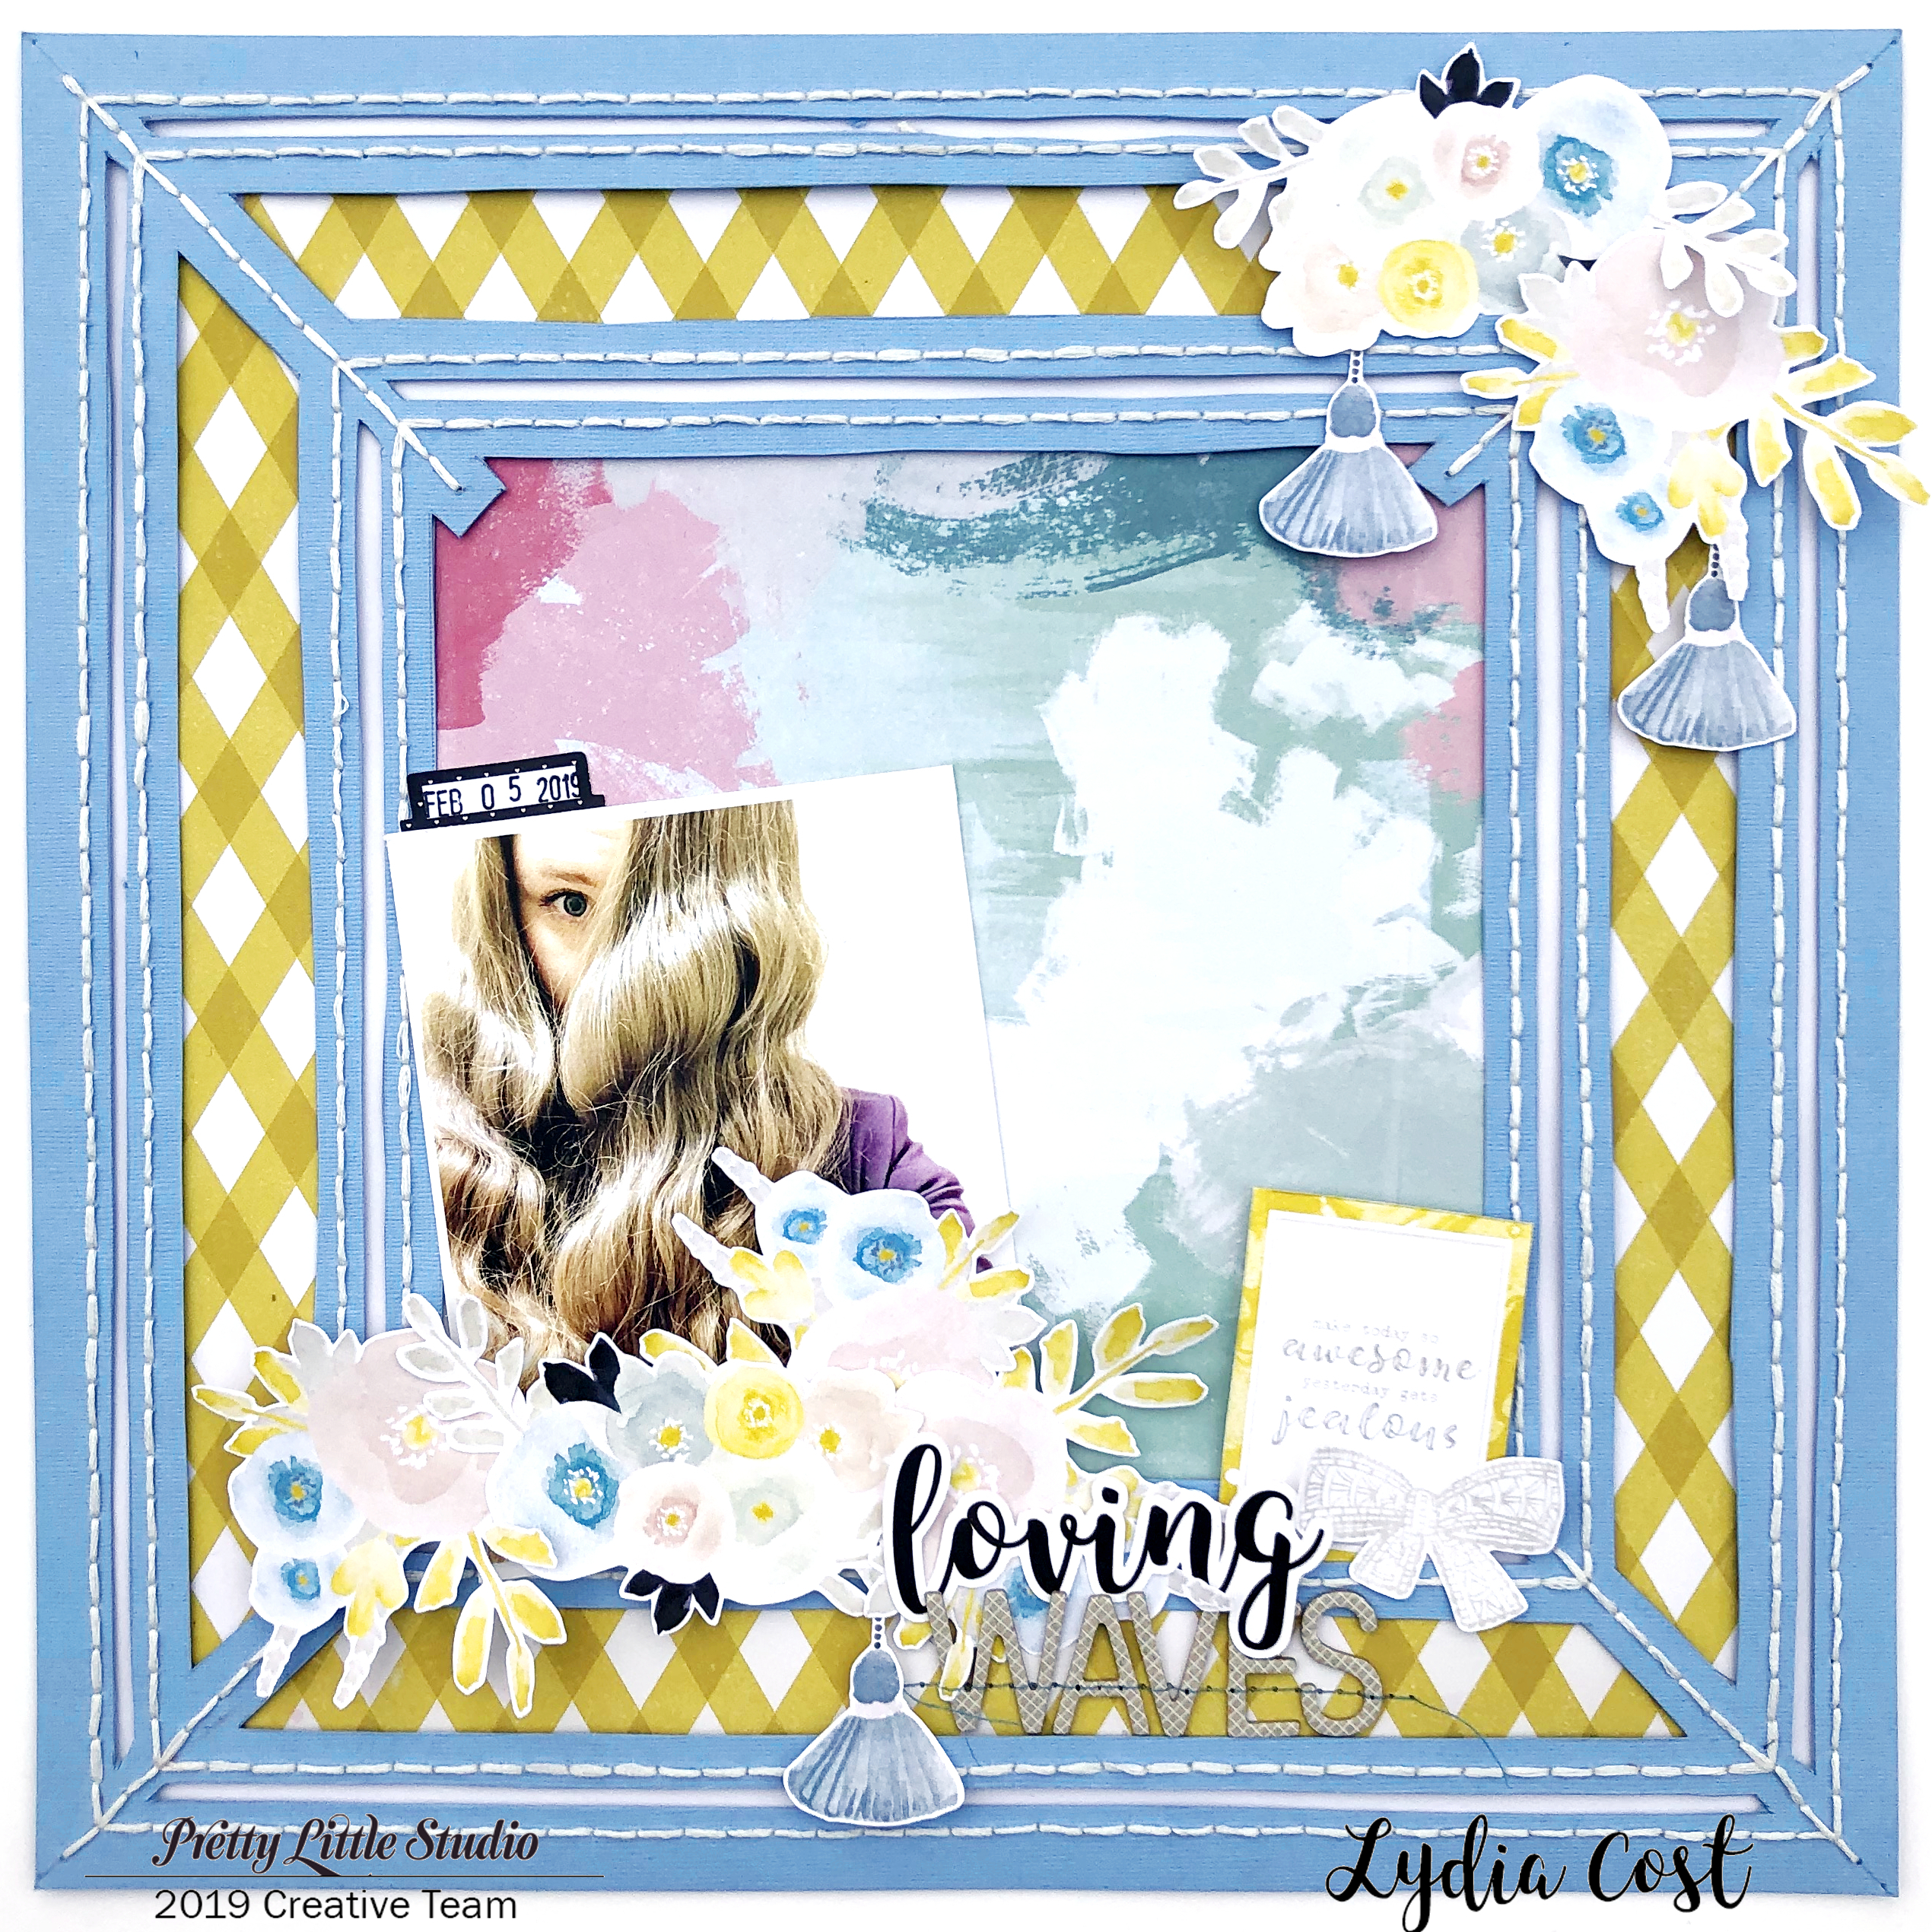 Loving Waves 12x12 Scrapbook Layout using Pretty Little Studio Shine Bright Collection - Lydia Cost